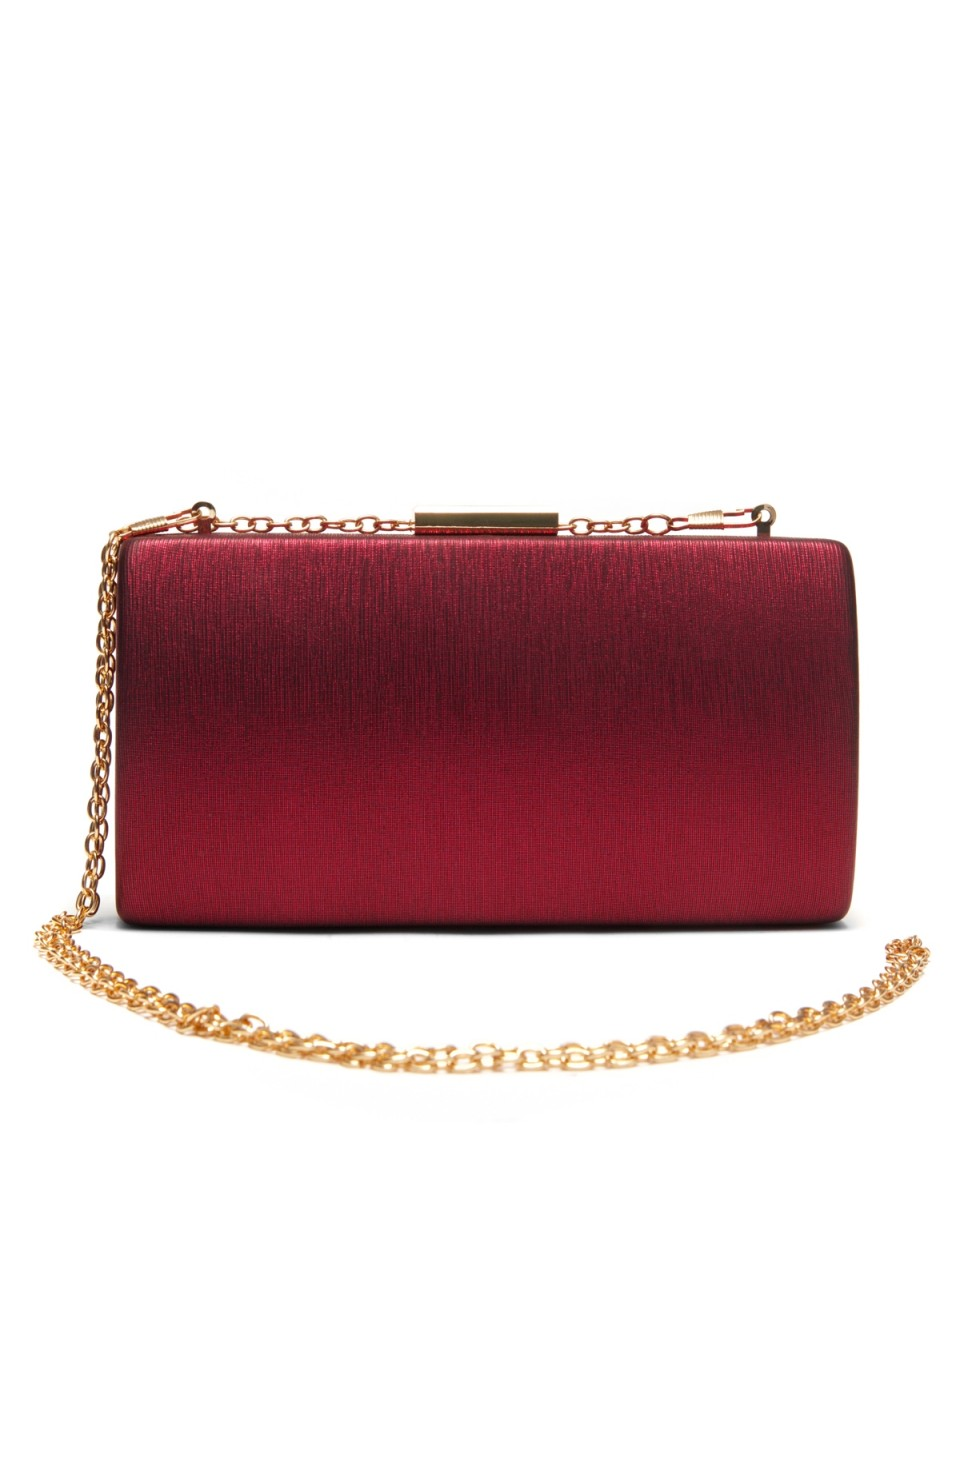 SZ9-16197- Georgeous classic look of hard case evening bag (Wine)